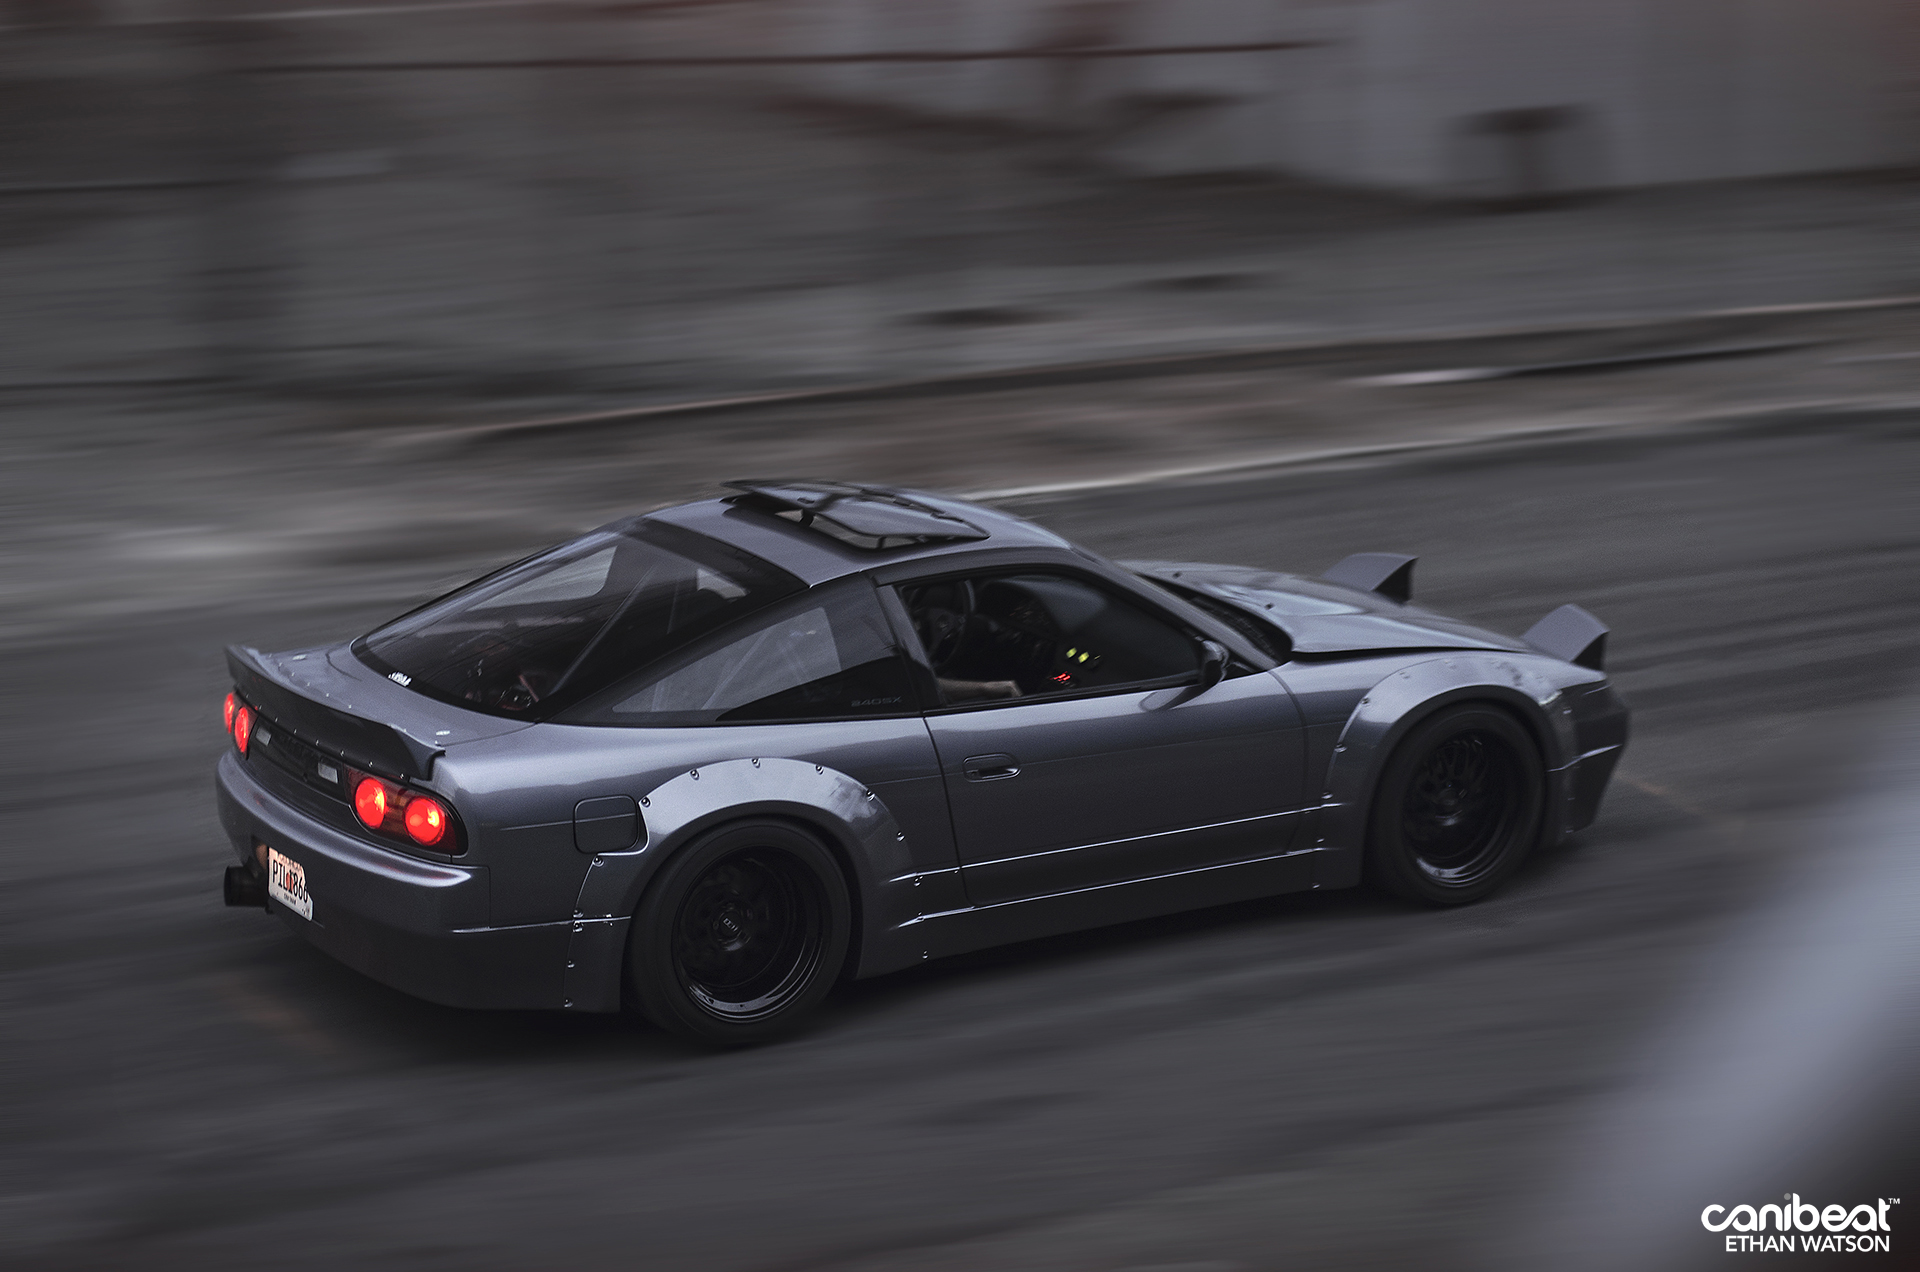 hight resolution of i was going to make this my 240 points post but i m 10 points away and i have to share this beautiful 240sx brian carters rb20det rocket bunny s13 what